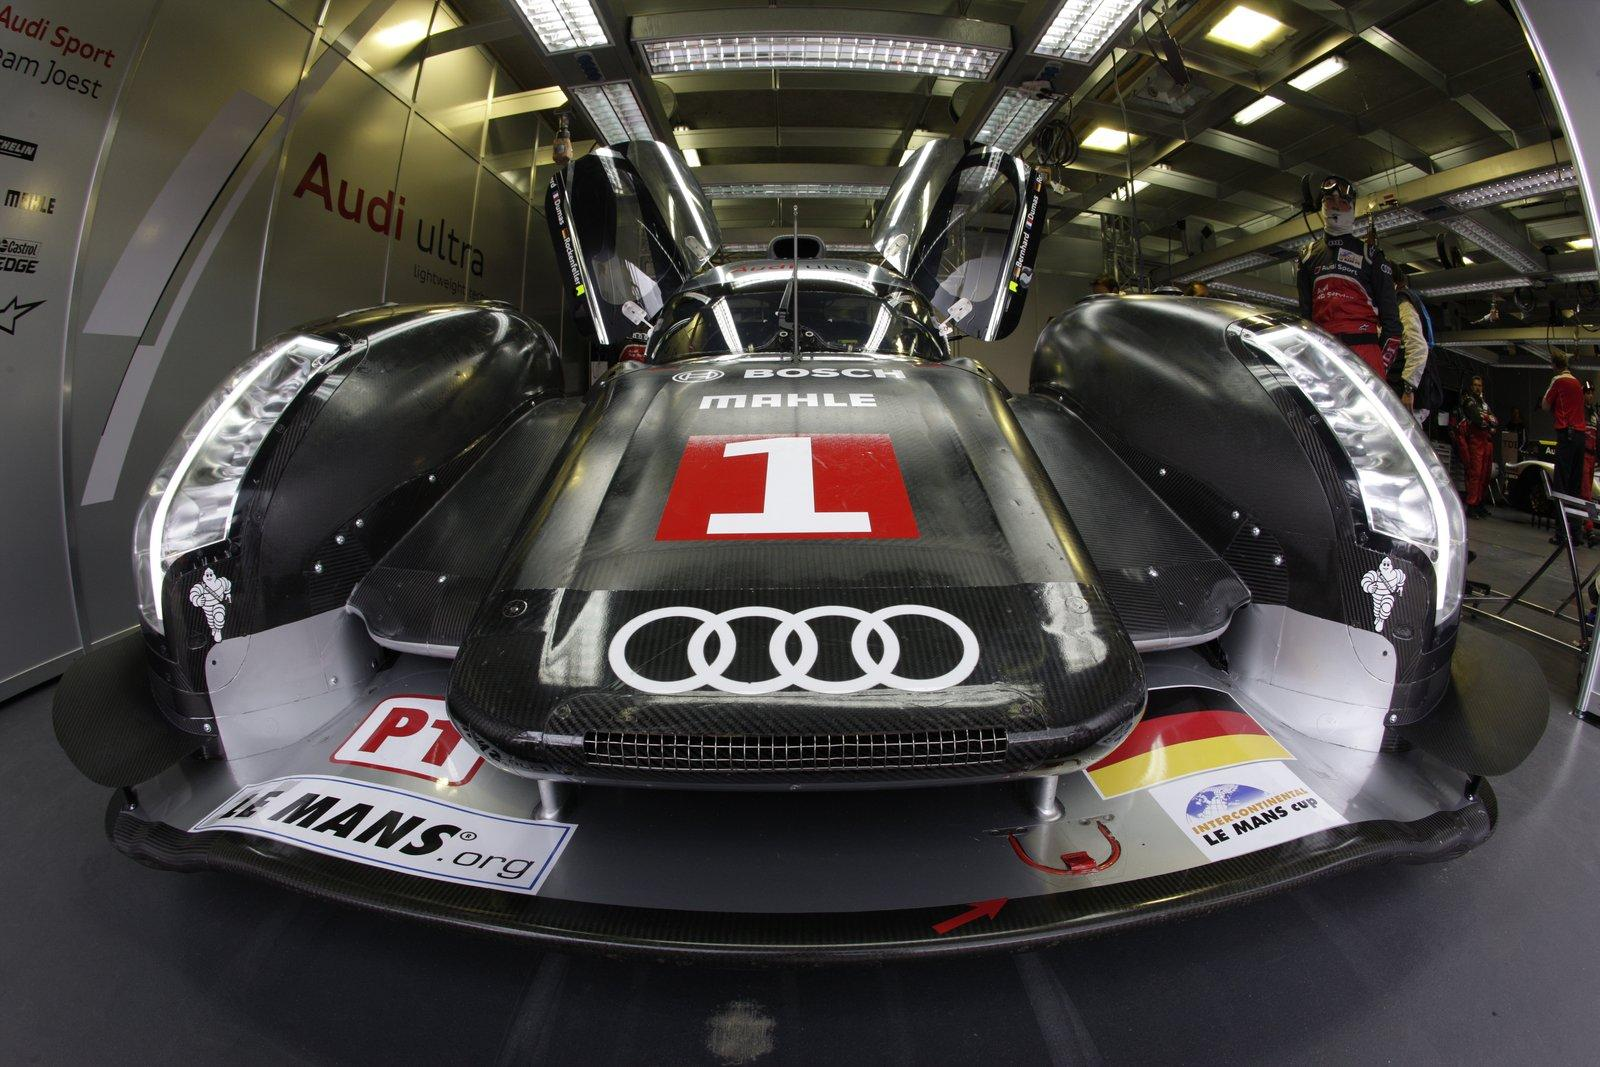 Le Mans 24hours Audi R18 TDI Hybrid 2012 photo 75187 pictures at